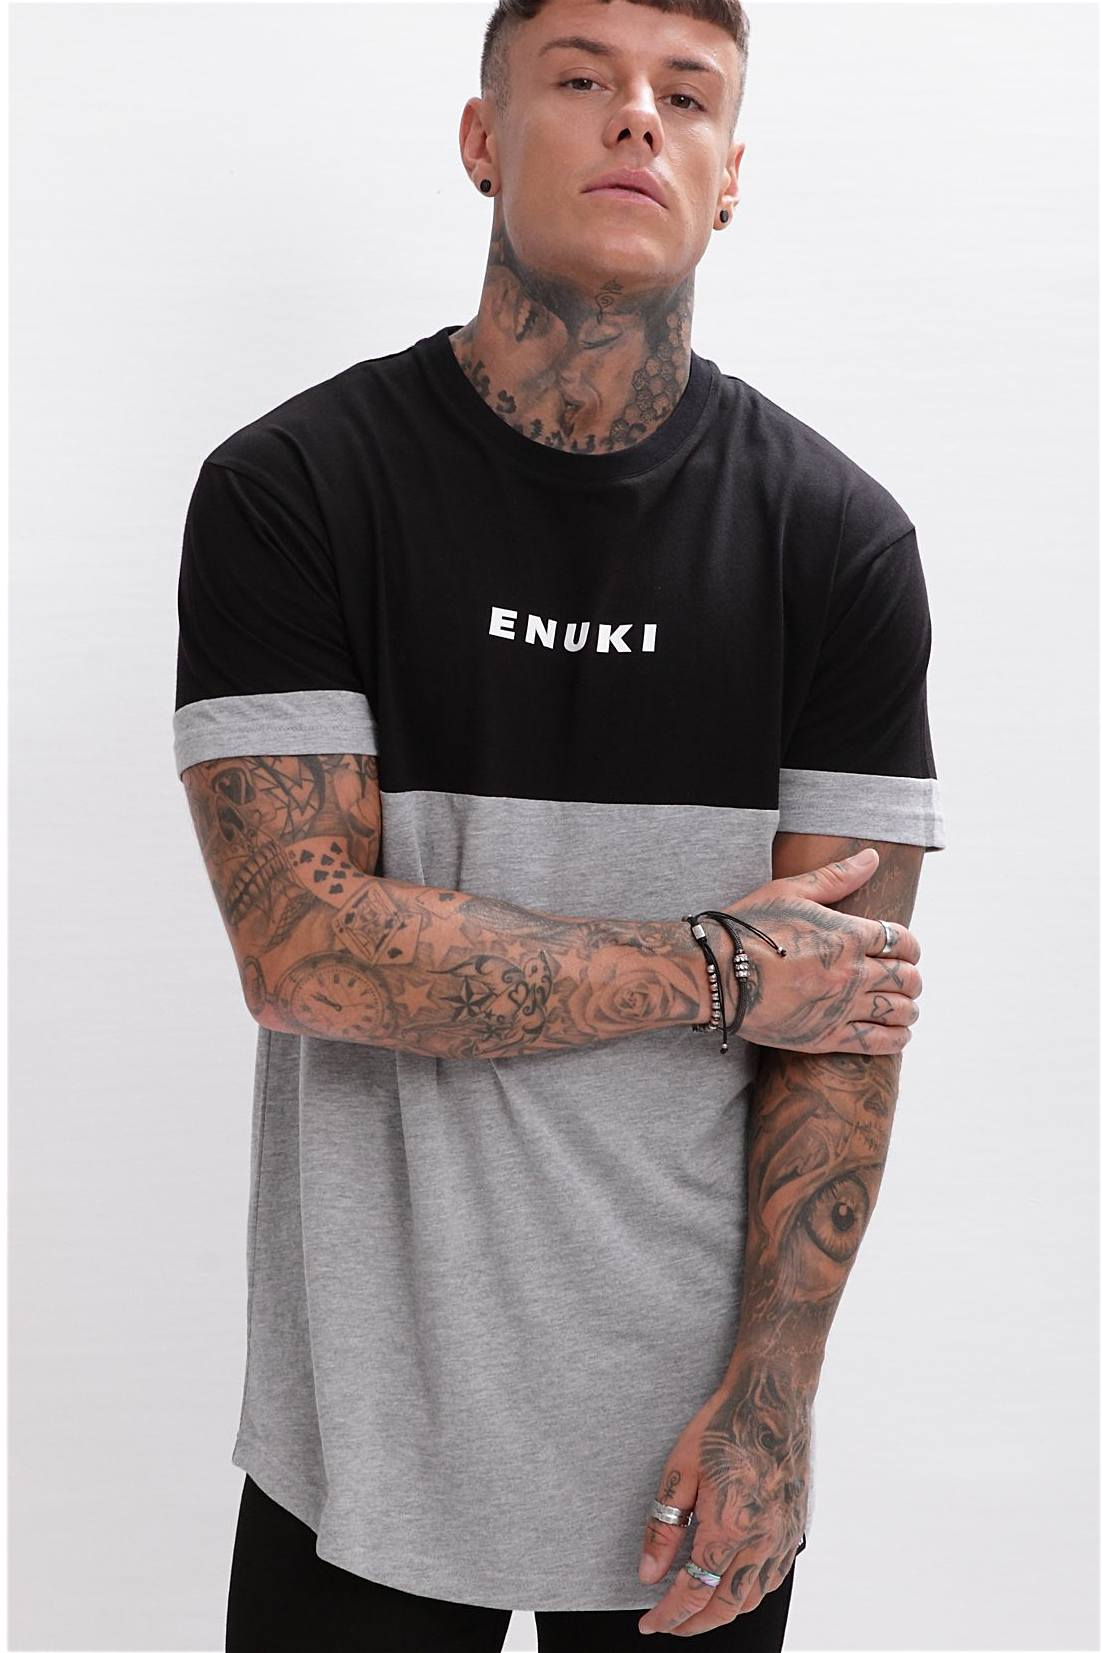 Enuki London Nasai Drop Shoulder Tee - Black/Grey